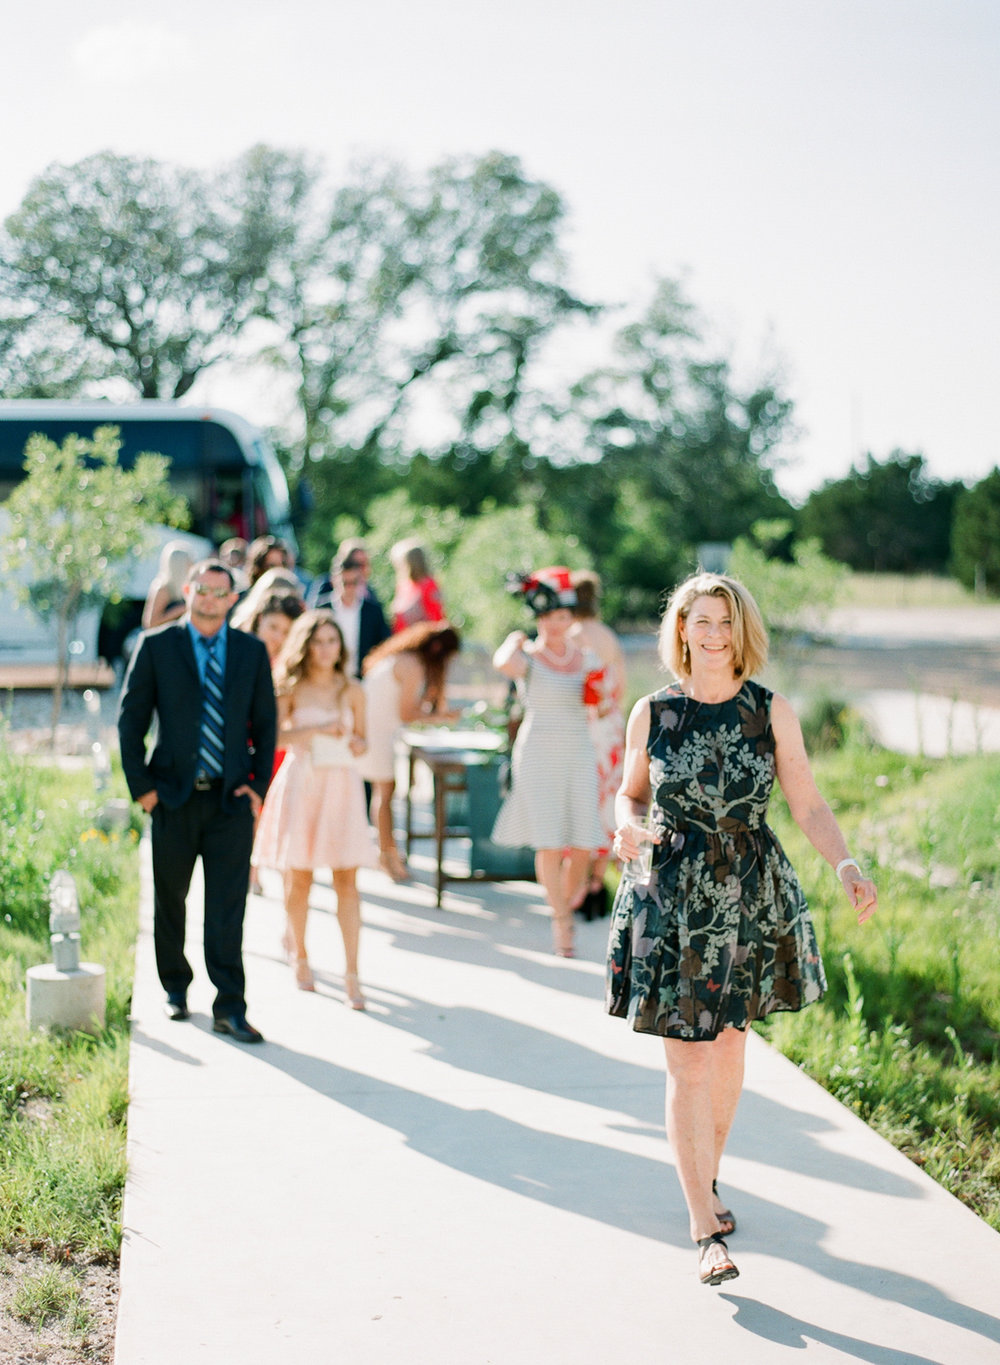 PROSPECT_HOUSE_WEDDING_AUSTIN_TX_BY_MATTHEW_MOORE_PHOTOGRAPHY_00267.jpg